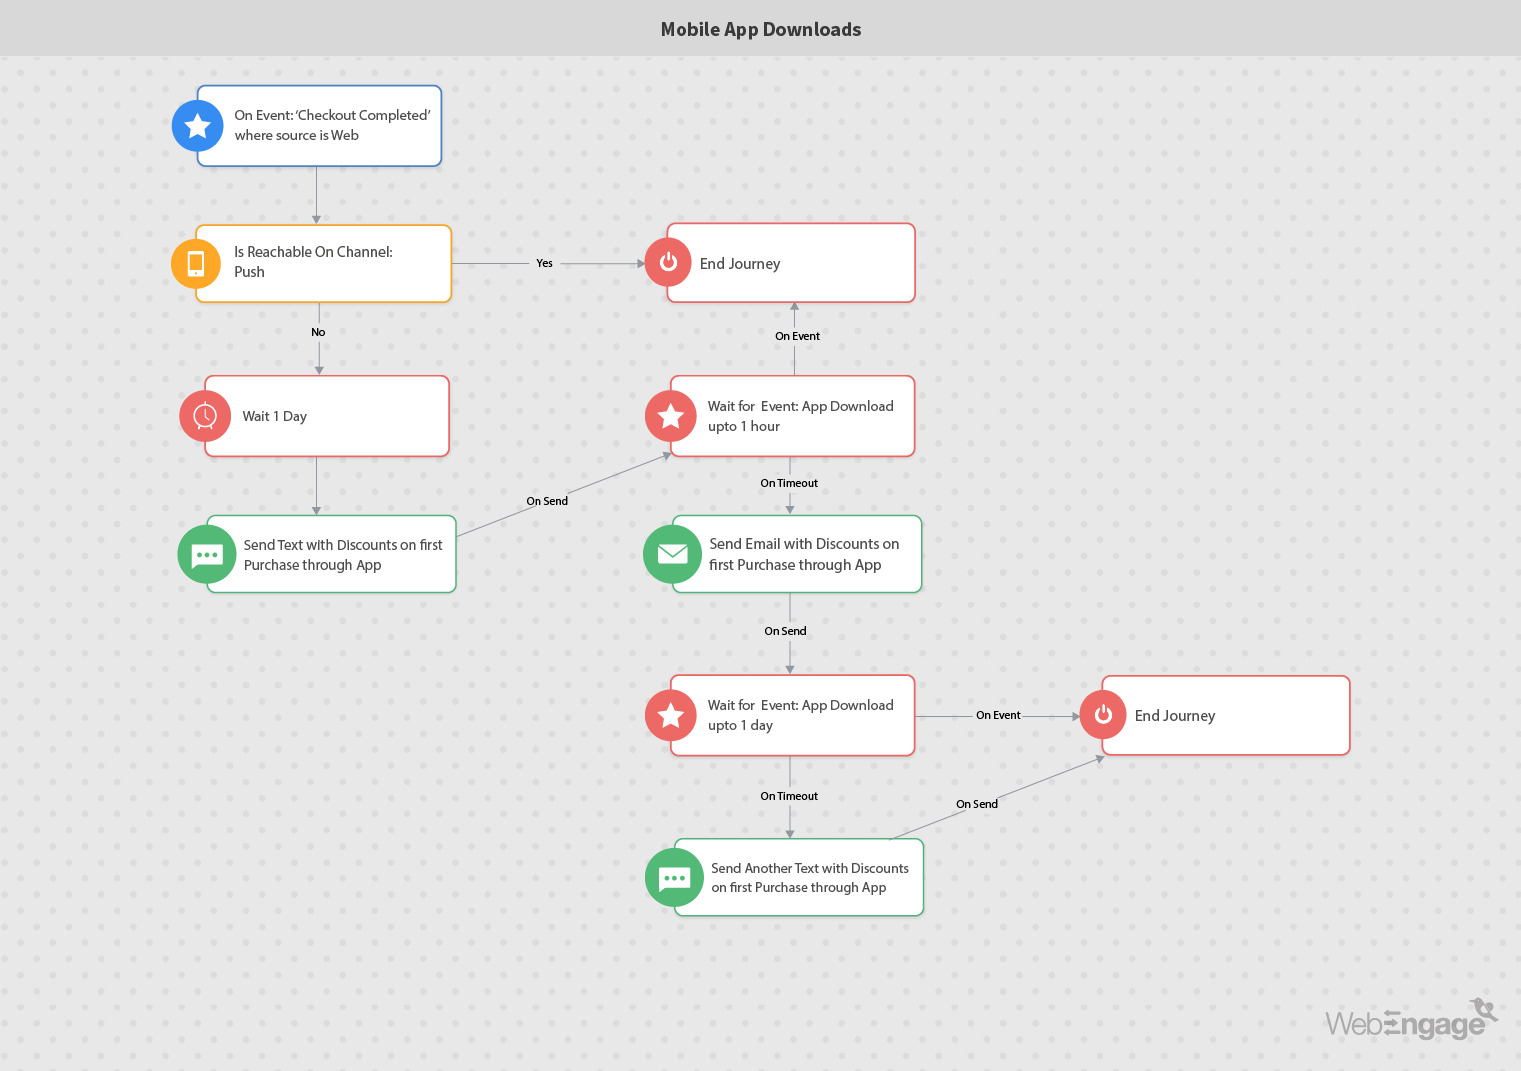 Marketing automation workflow for mobile app downloads